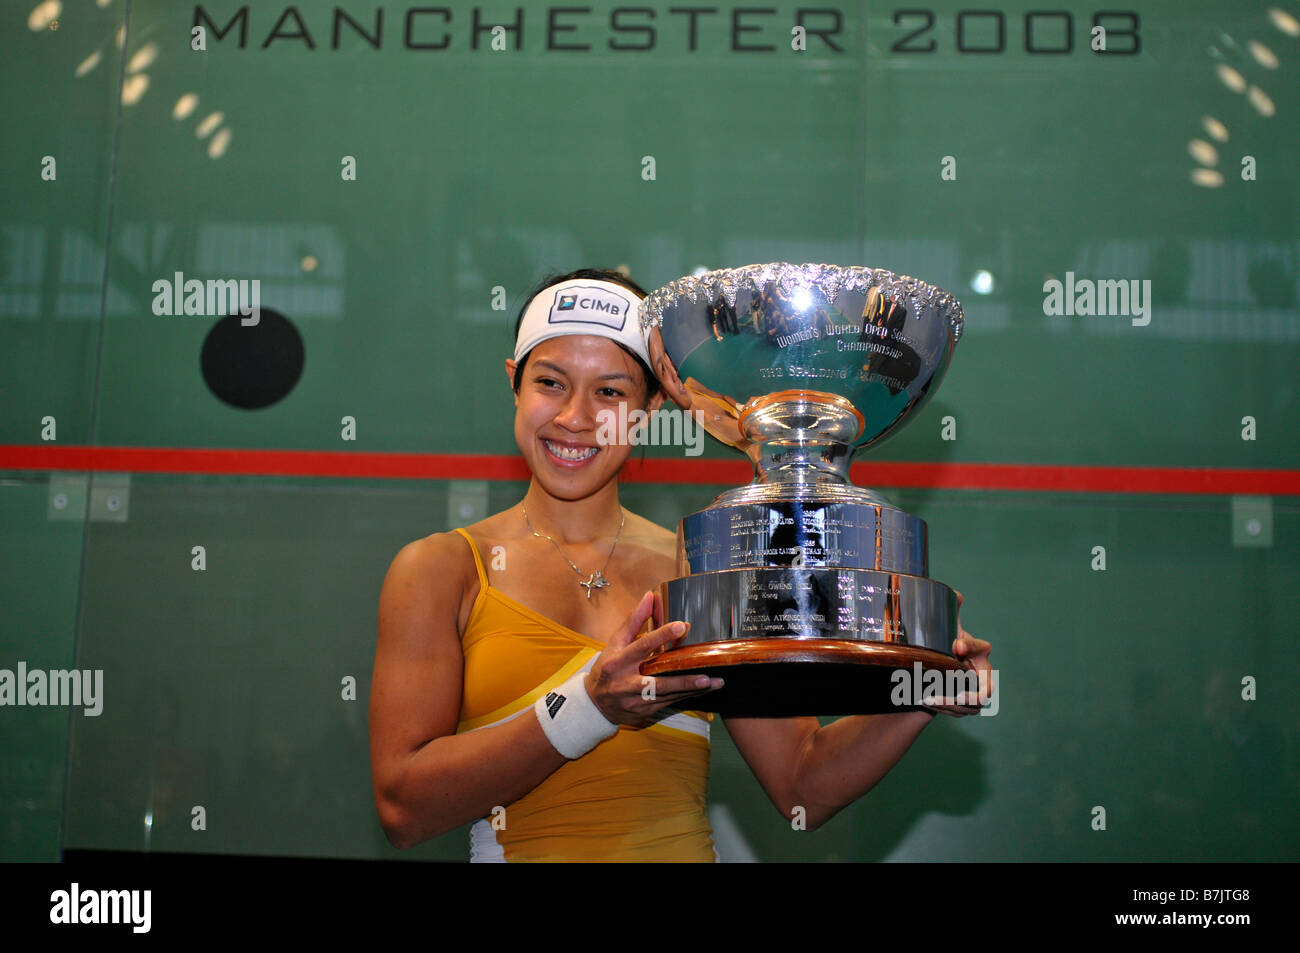 Nicol David holds the trophy after beating Vicky Botwright to win the 2008 World Squash Championships in Manchester - Stock Image